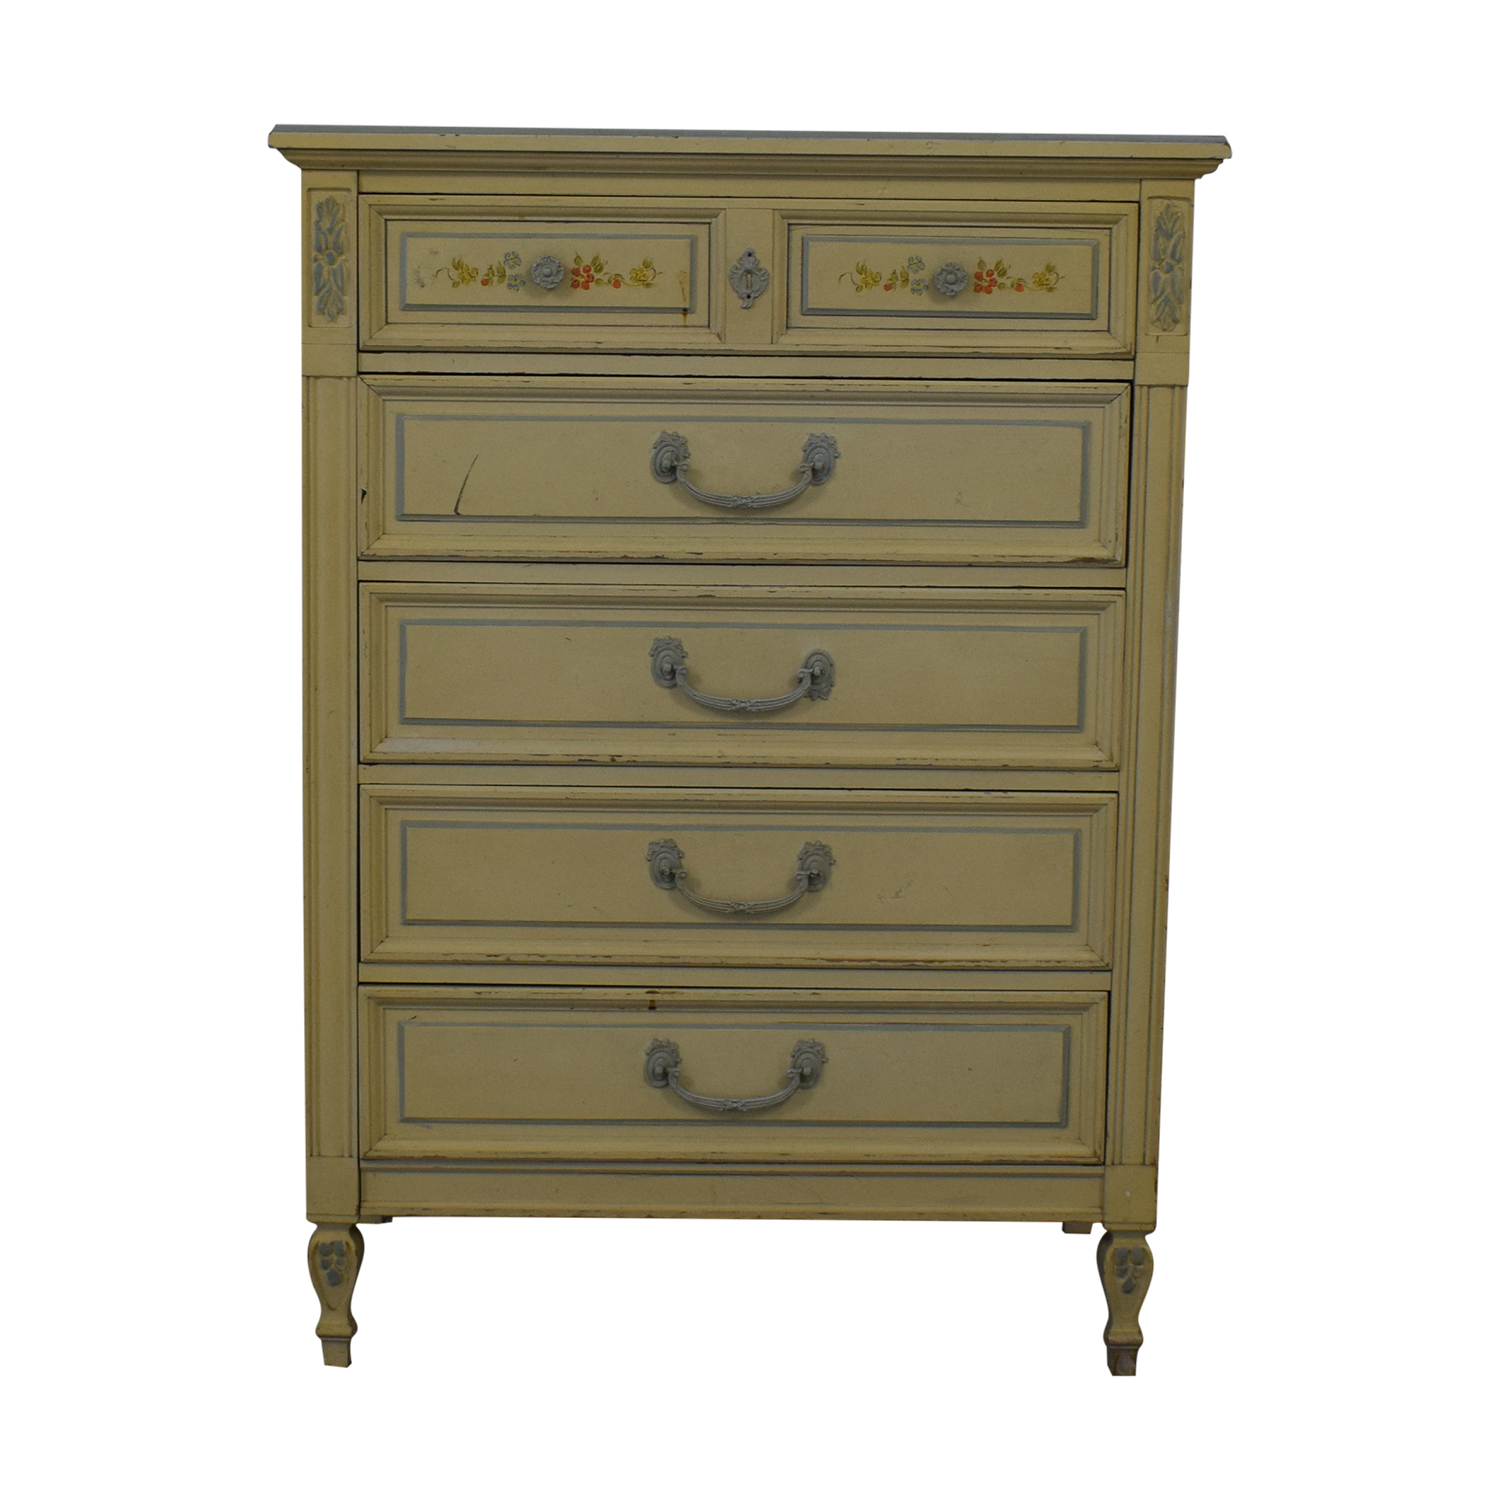 Dixie Furniture Company Dixie Furniture Company Victorian Five-Drawer Dresser price